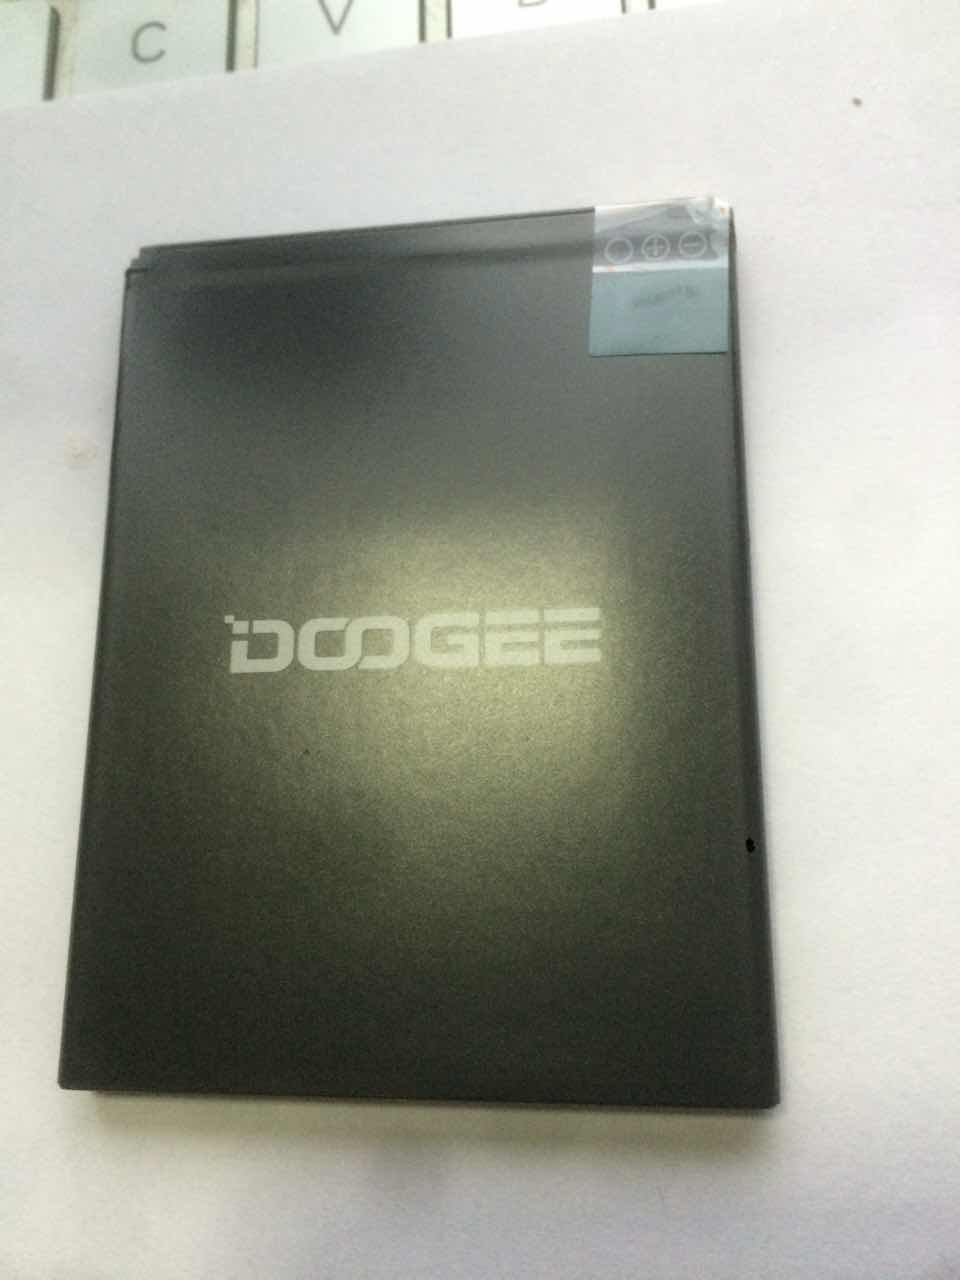 Doogee T3 Battery Large Capacity 3200mAh 100 Original New Replacement accessory accumulators For Doogee T3 Cell